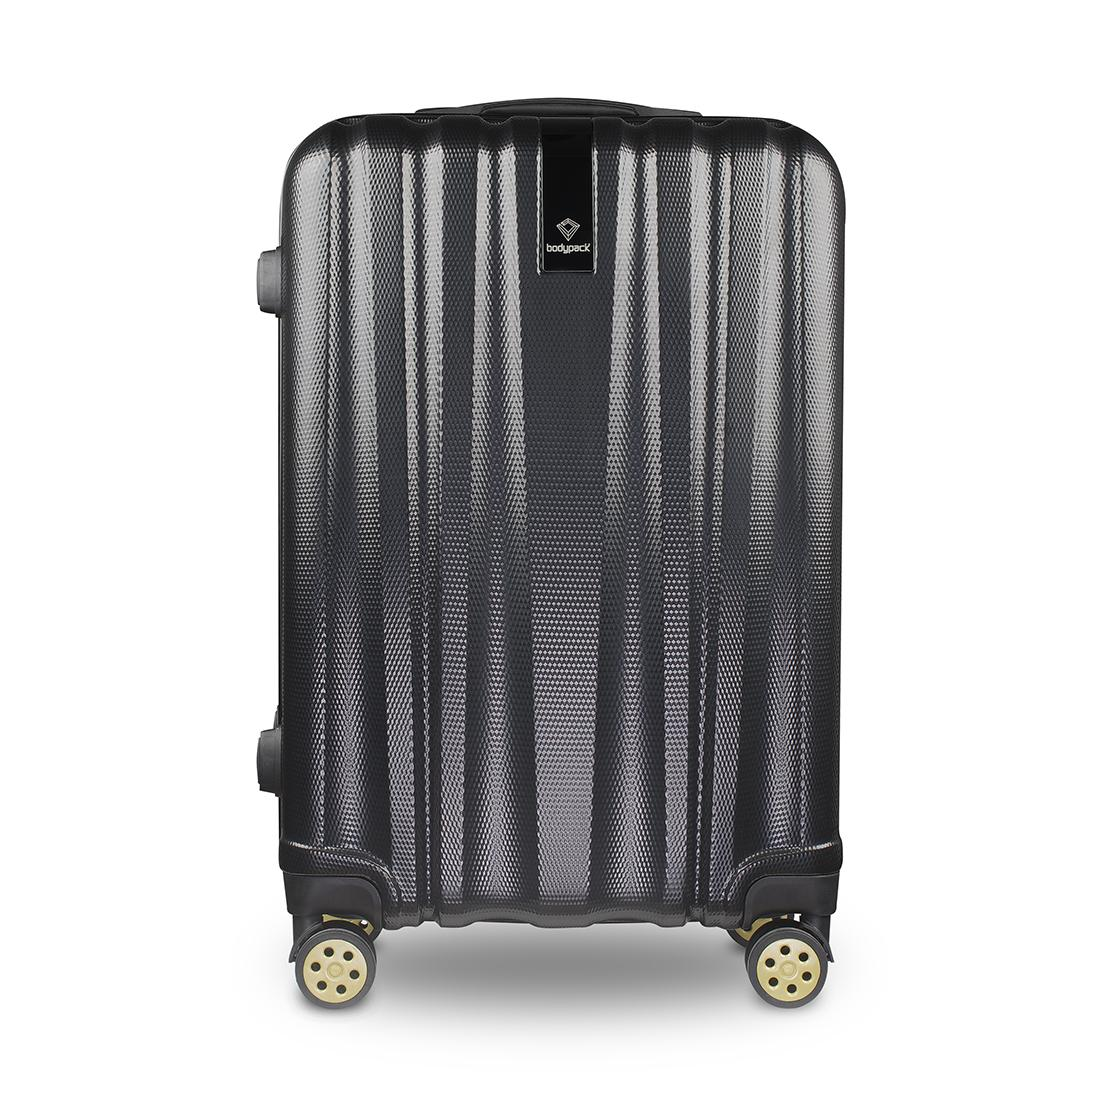 Bodypack Shelter 24 Inch Luggage - Black